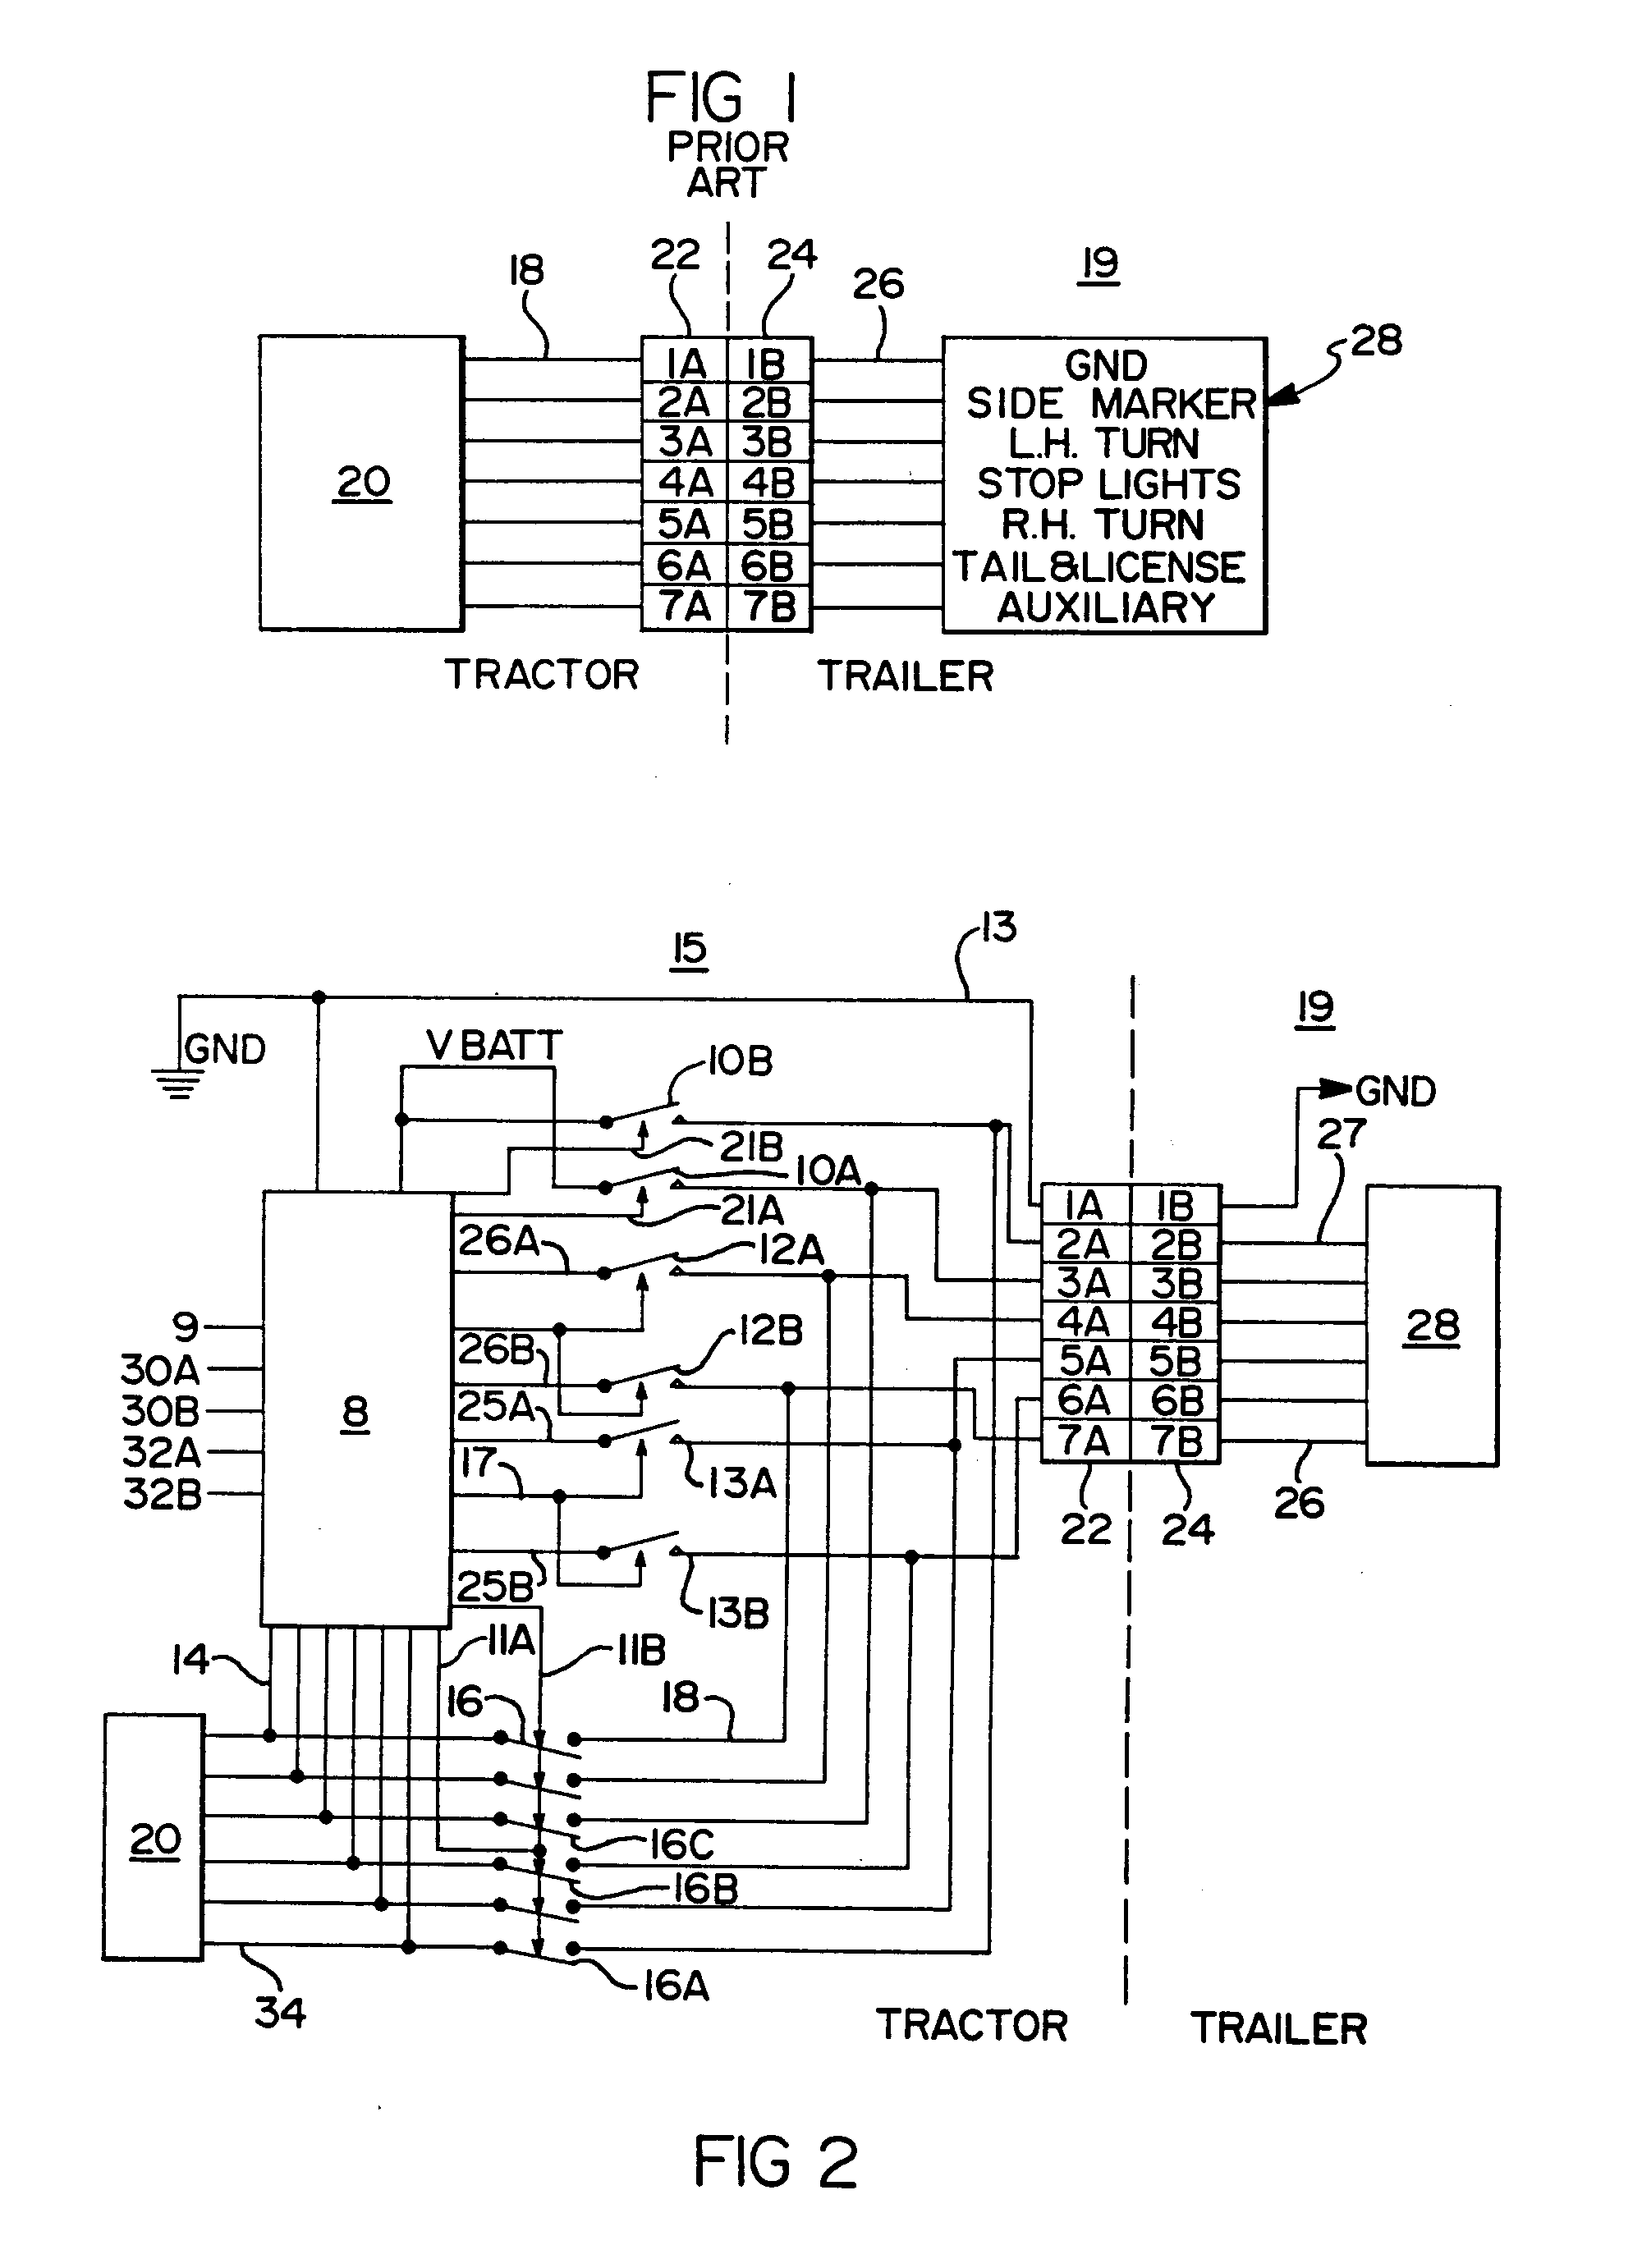 imgf0001 bendix trailer abs wiring diagram freightliner air tank diagram semi trailer tail light wiring diagram at bayanpartner.co